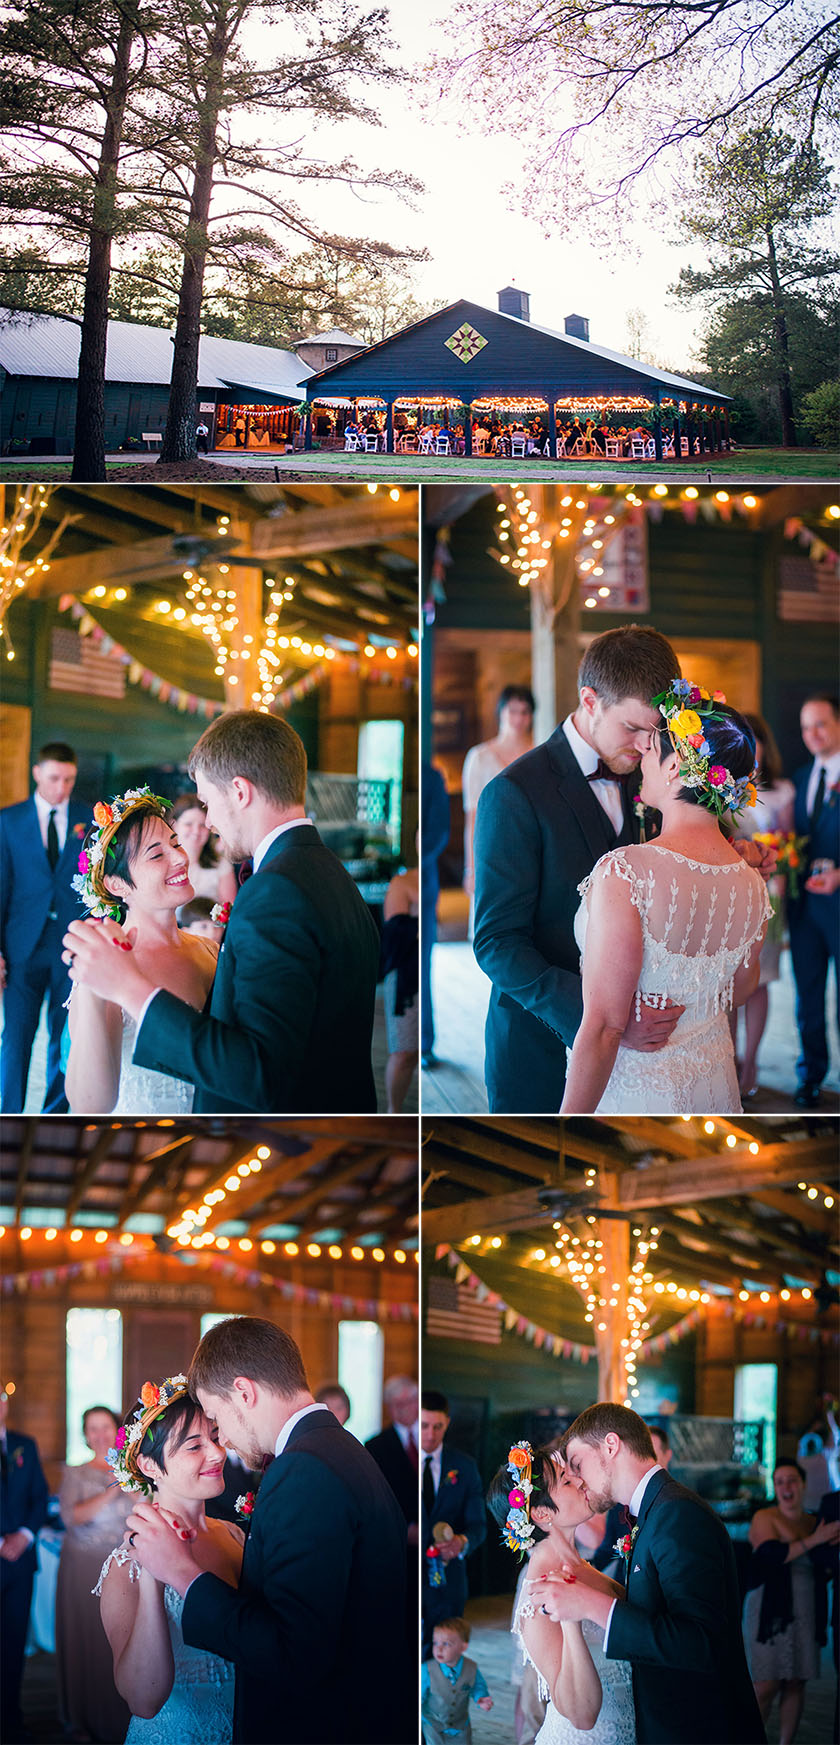 Connection_Photography_Raleigh_Wedding_43